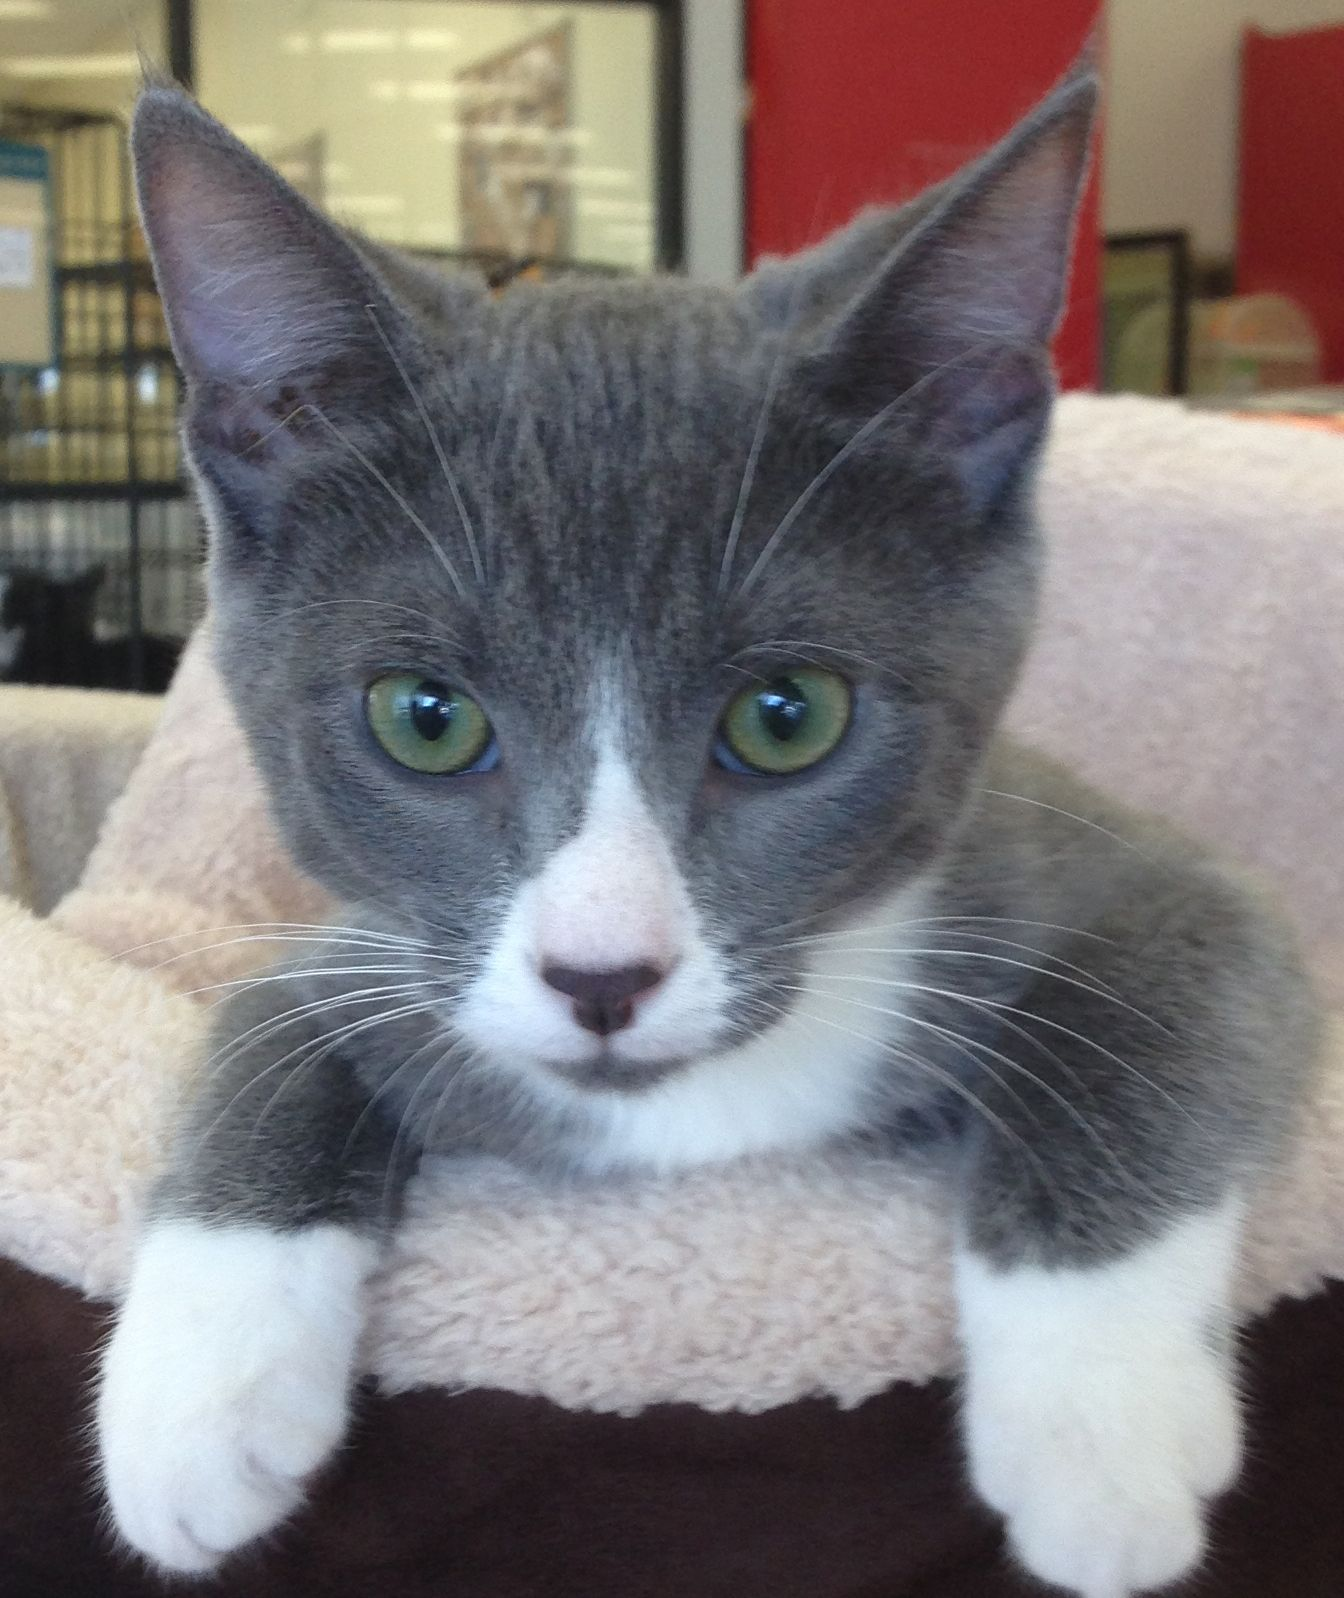 Sheldon Is A Precocious 5 Month Old Kitten He Loves To Play Wrestle Talk And Then Snuggle He Is Neutered Vaccinated An Animal Welfare League Pets Cute Animals